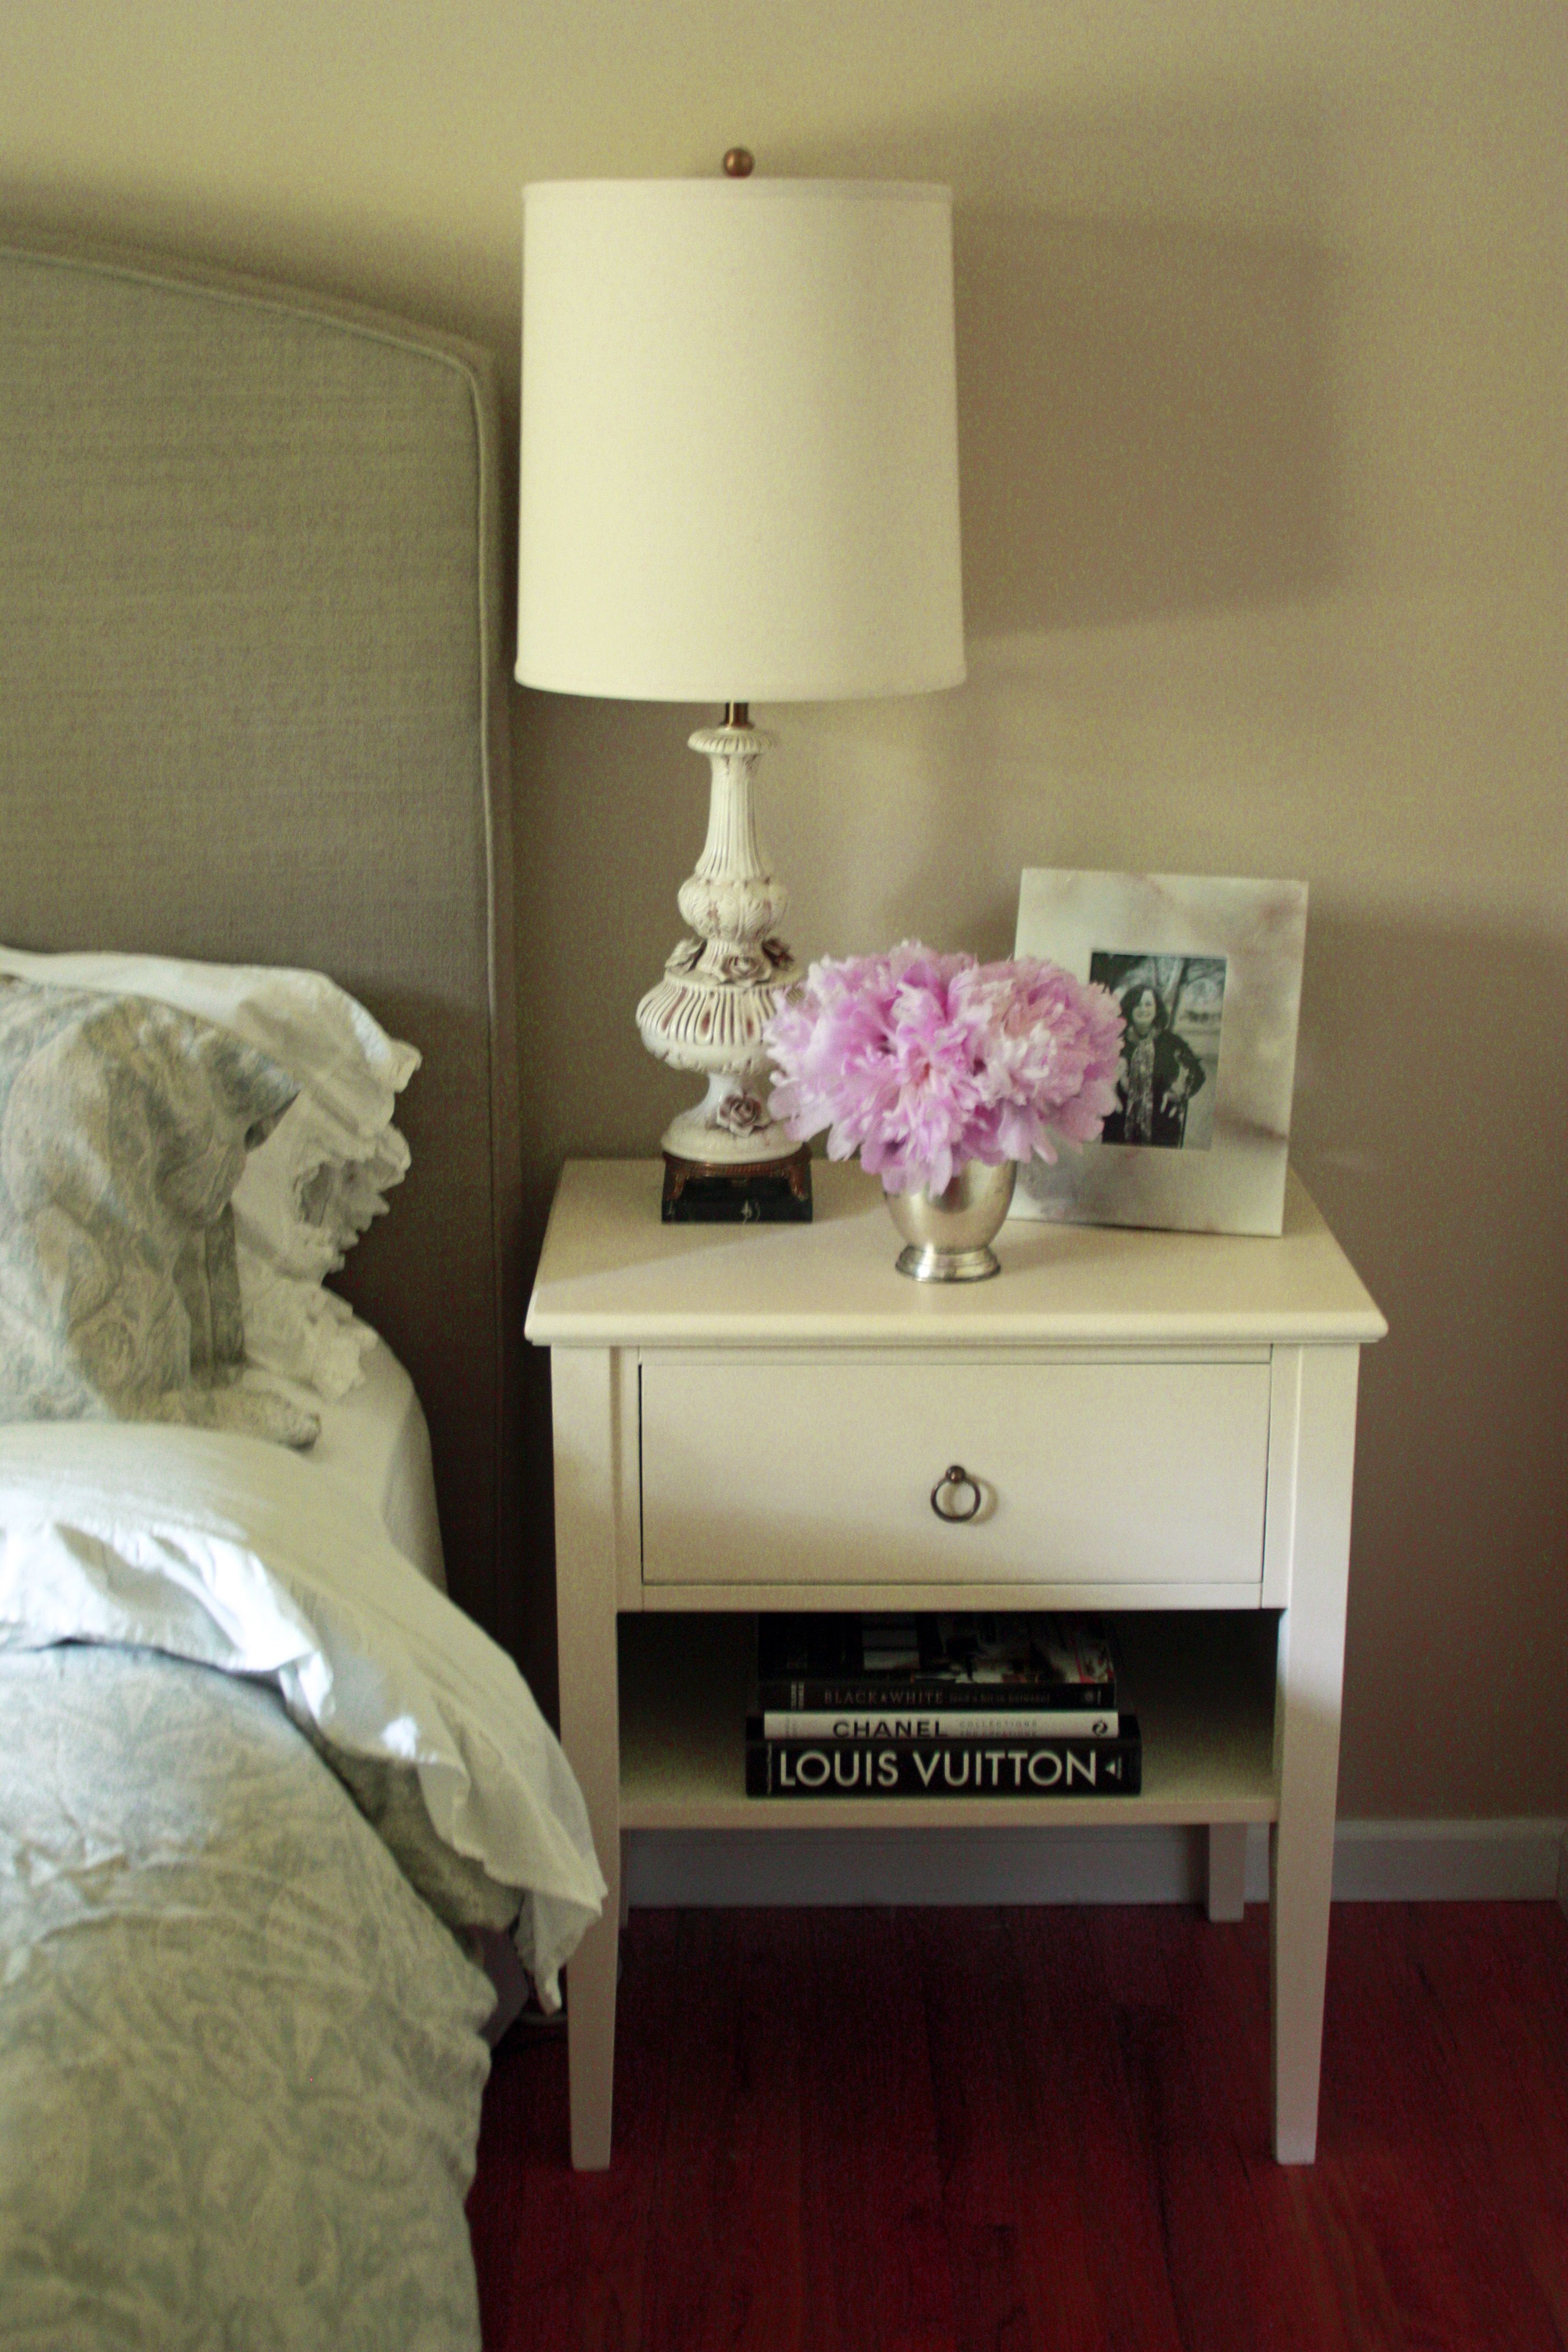 Bedrooms And More Seattle Decor bedside tables, annie sloan chalk paint in old white. marianne